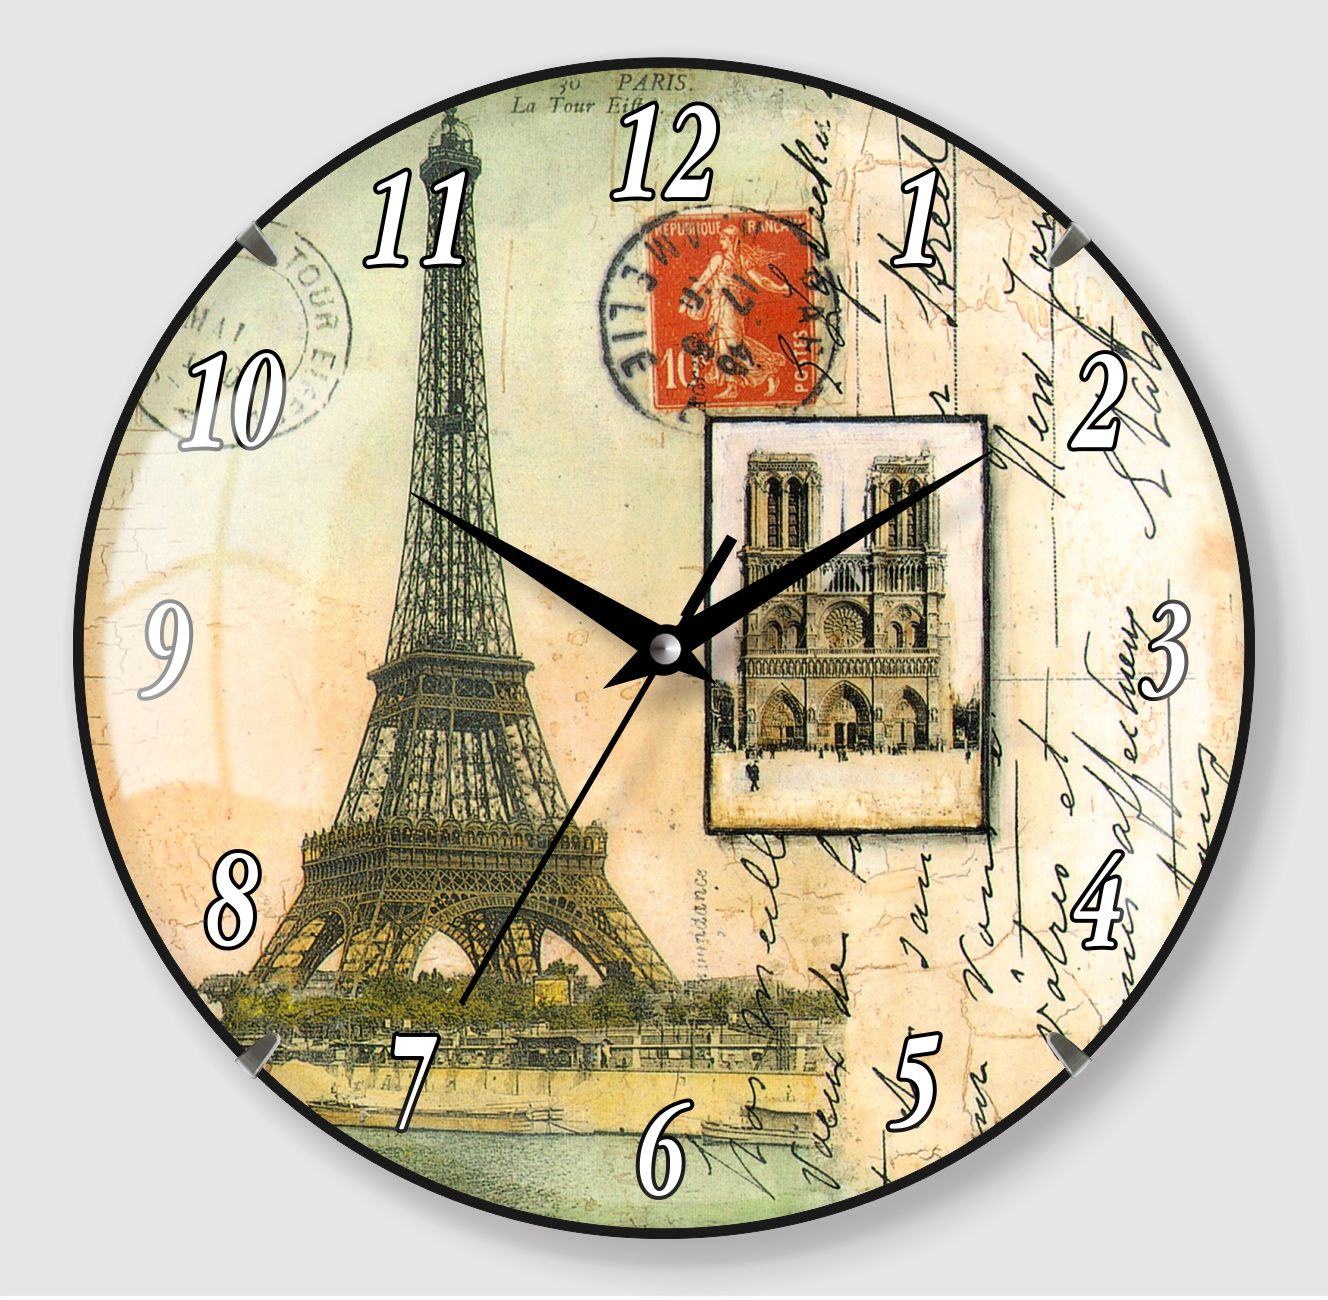 Retro design wall clock